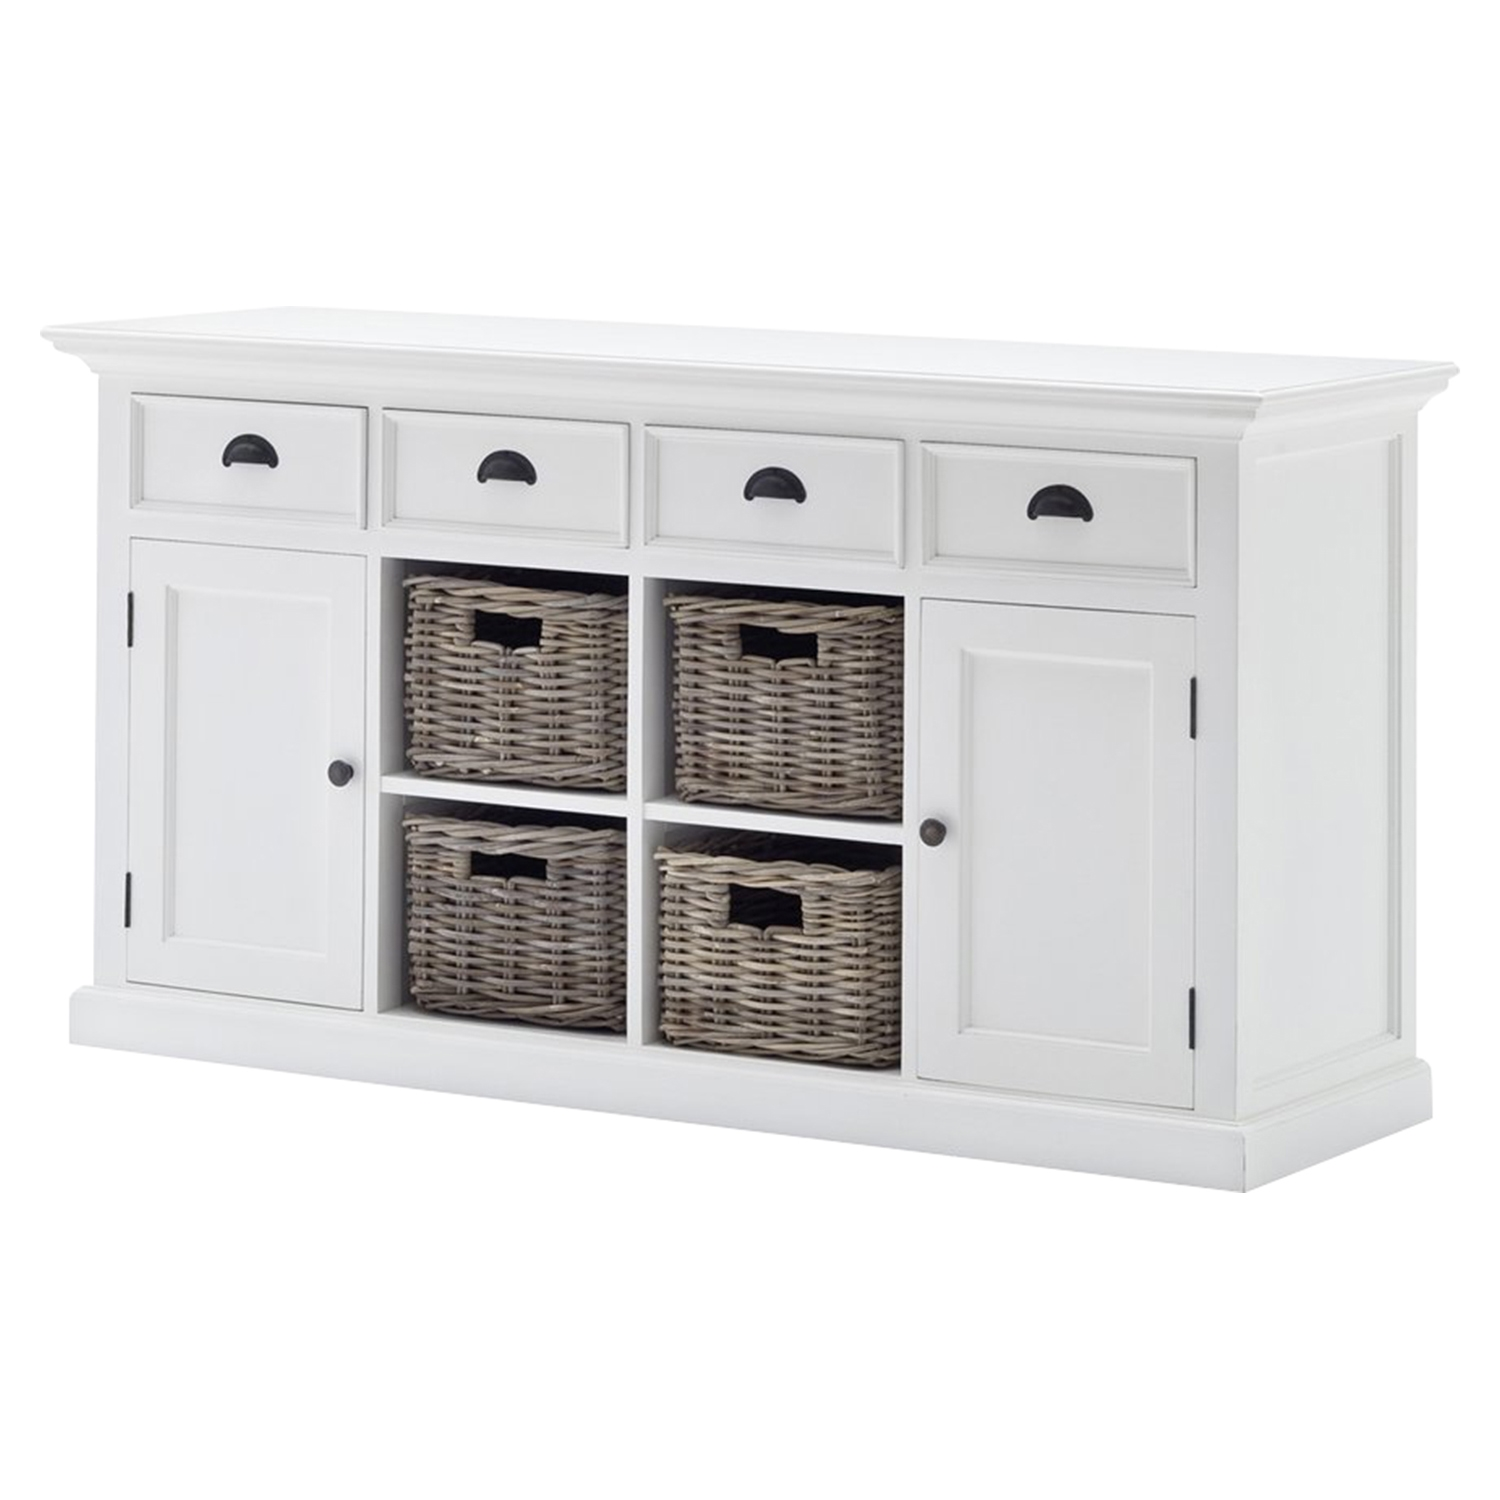 Halifax Buffet with 4 Baskets Set - Pure White - NSOLO-B189